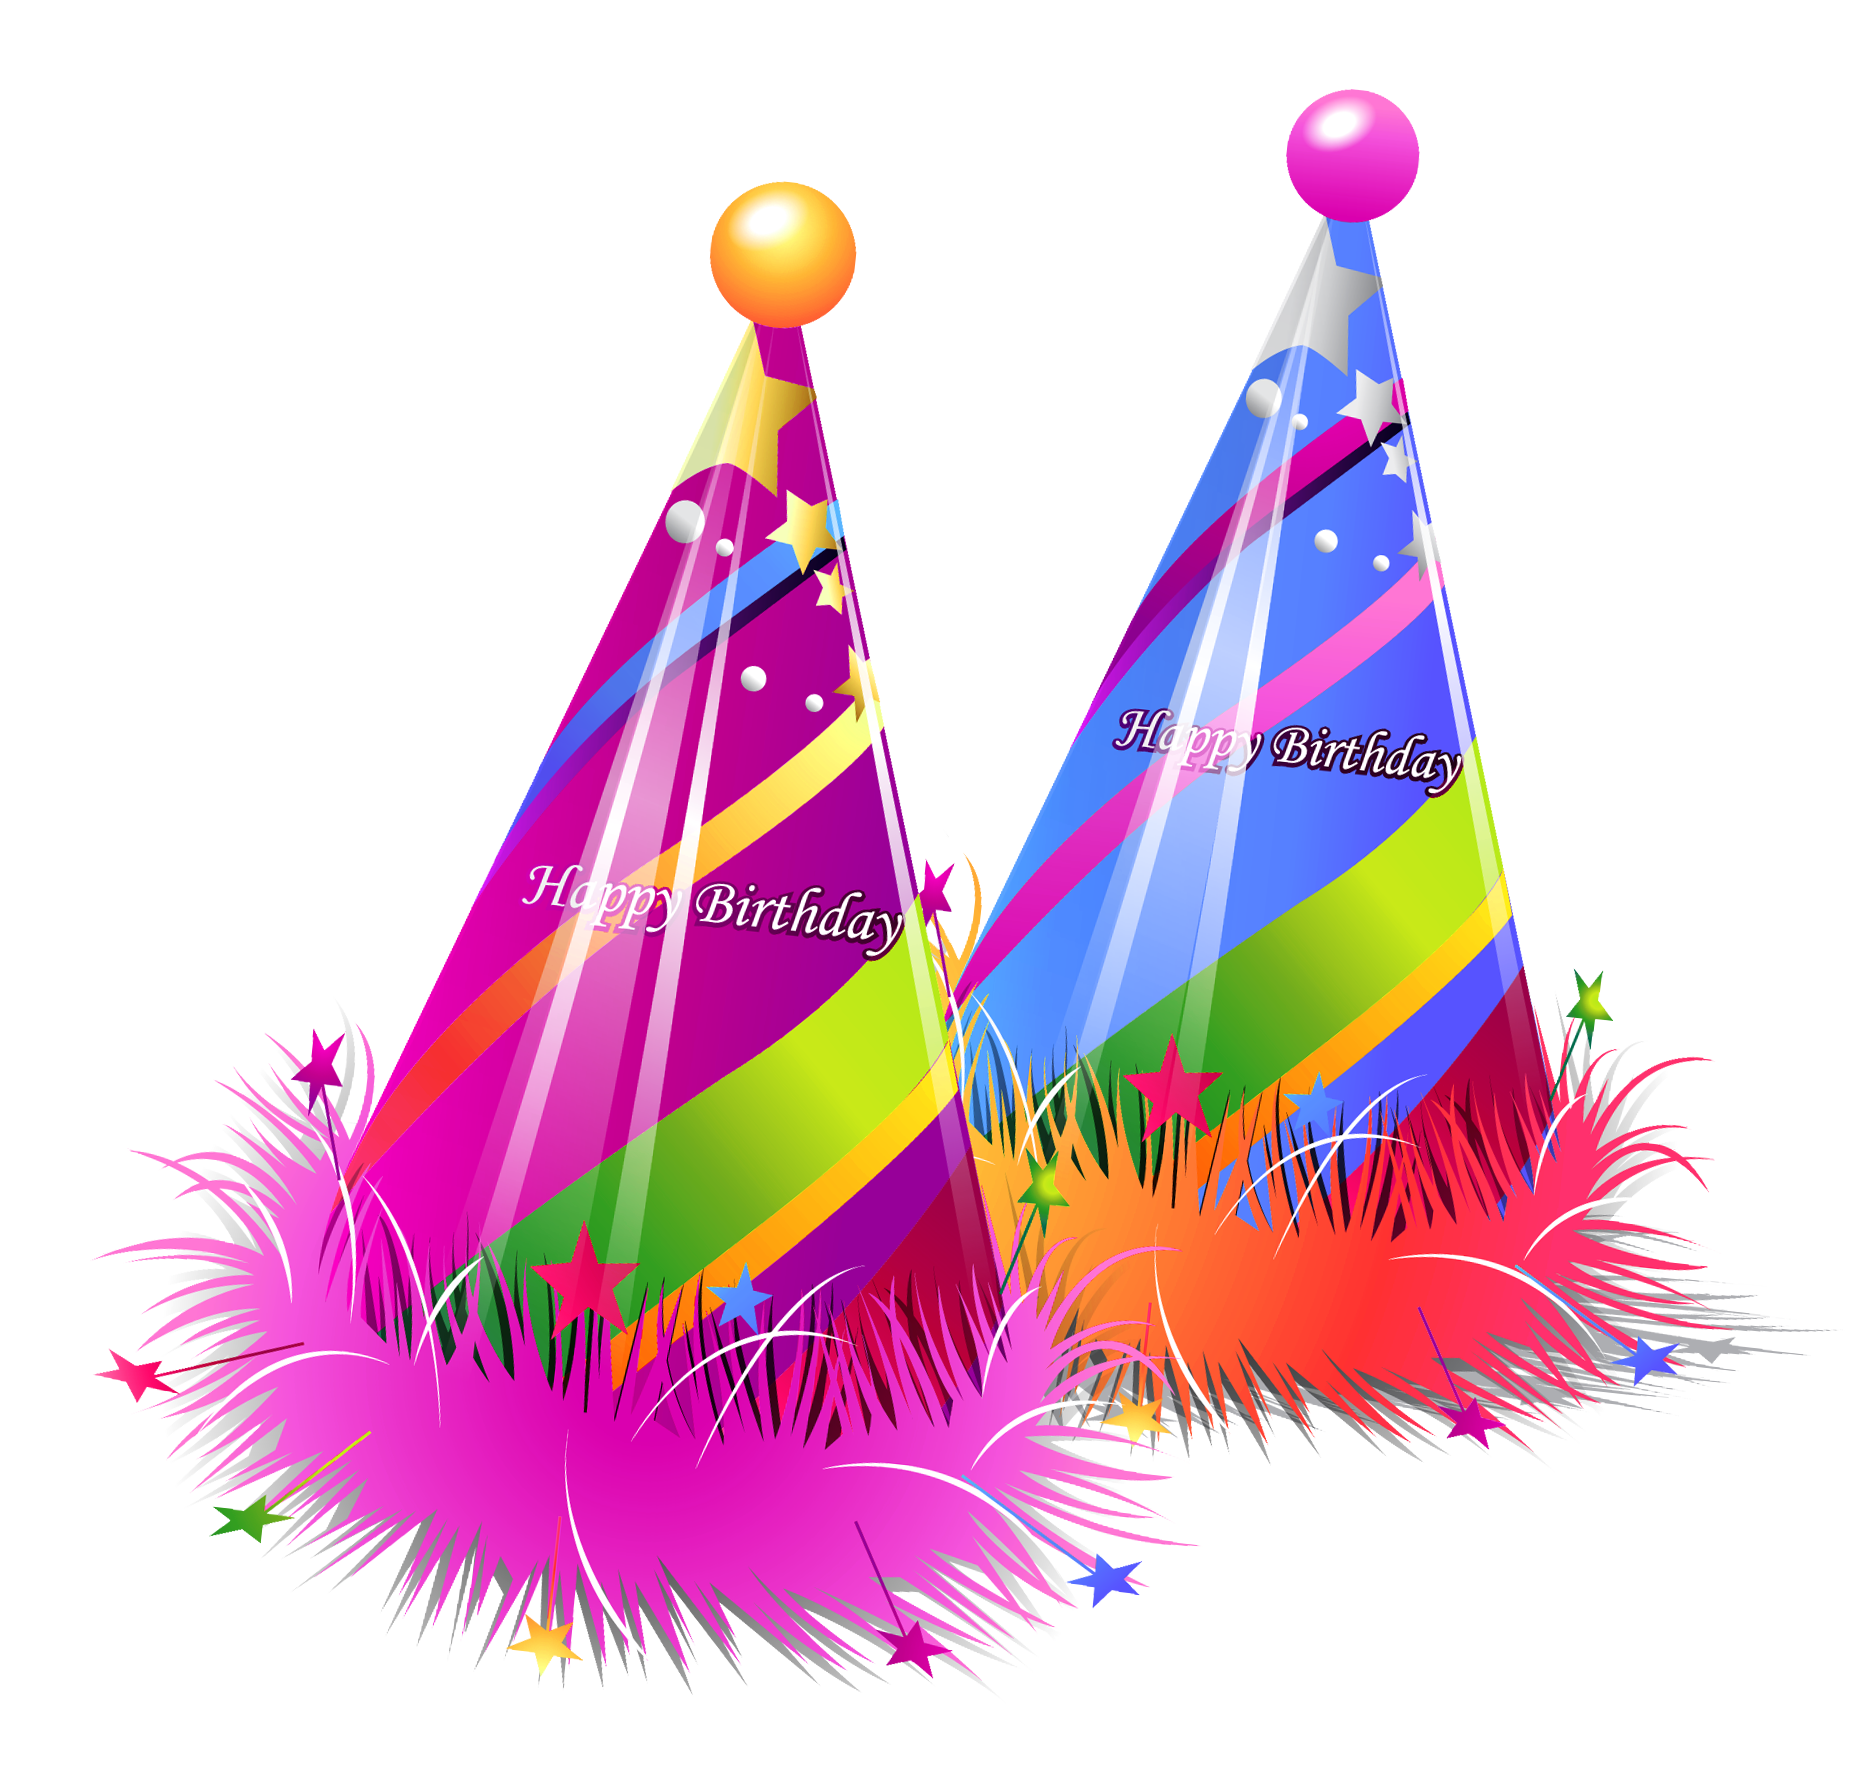 Two Birthday Hat PNG Transparent Images